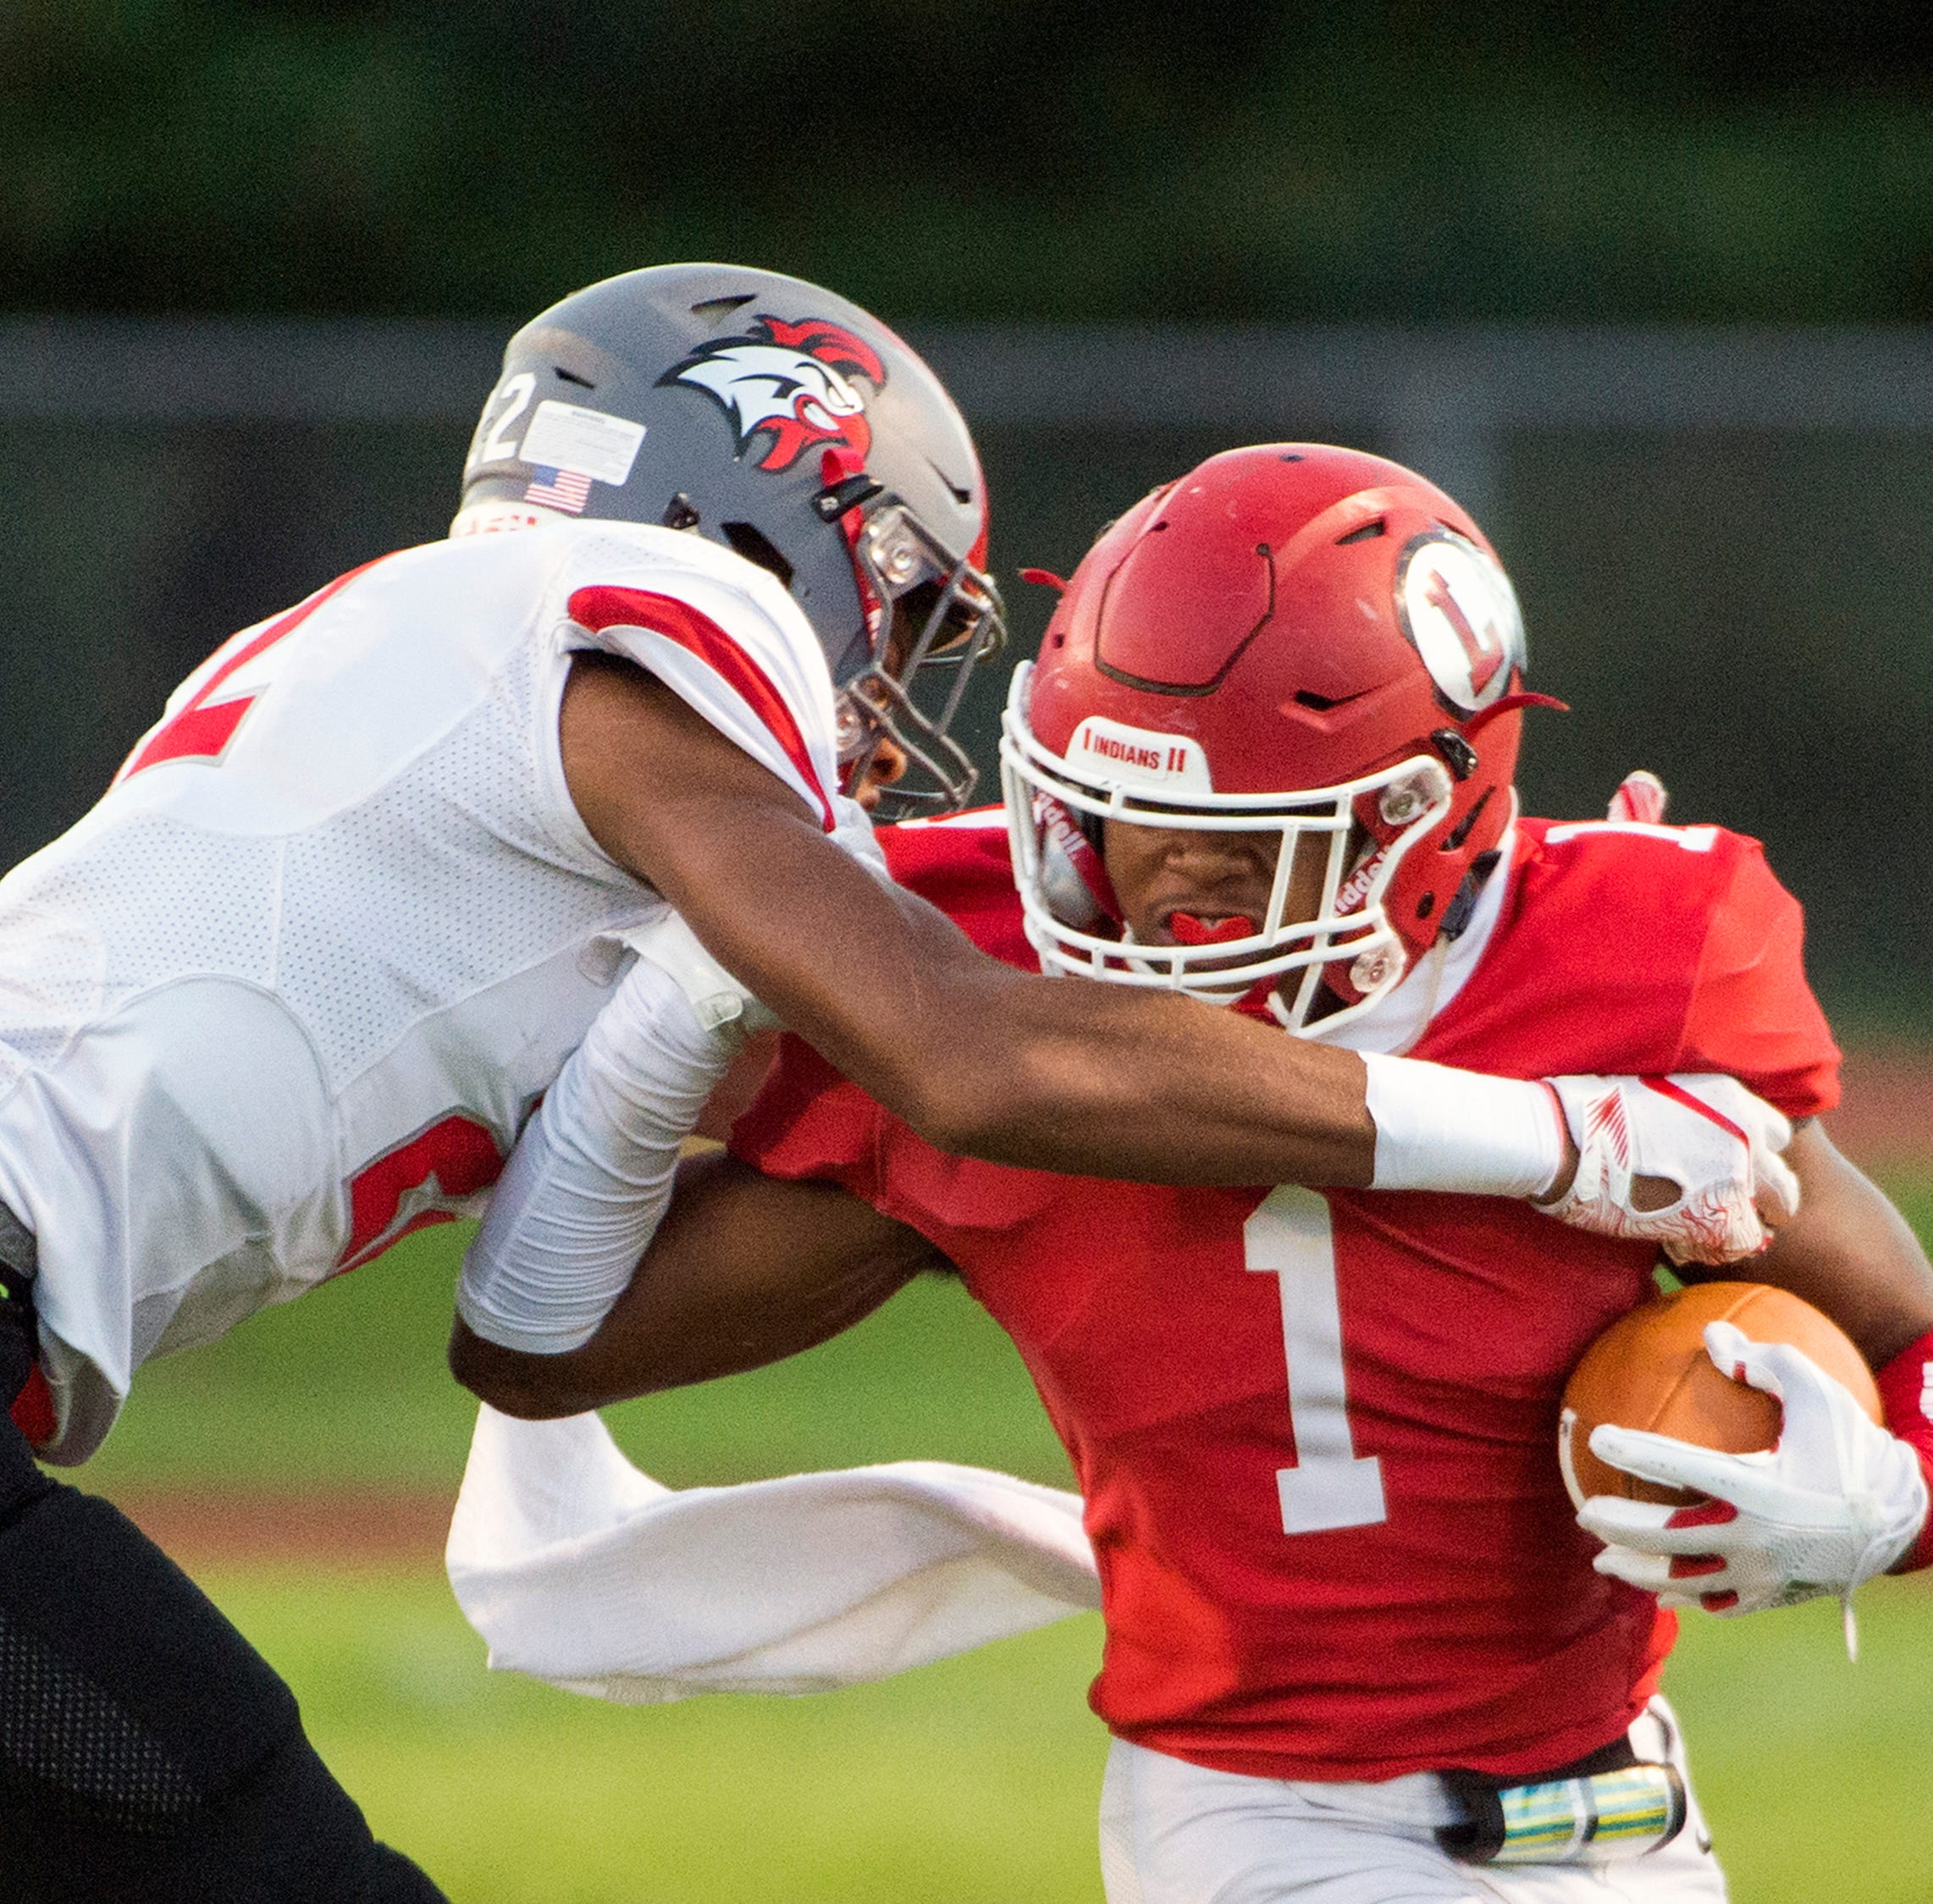 H.S. football: Vineland's valiant comeback falls short against Lenape